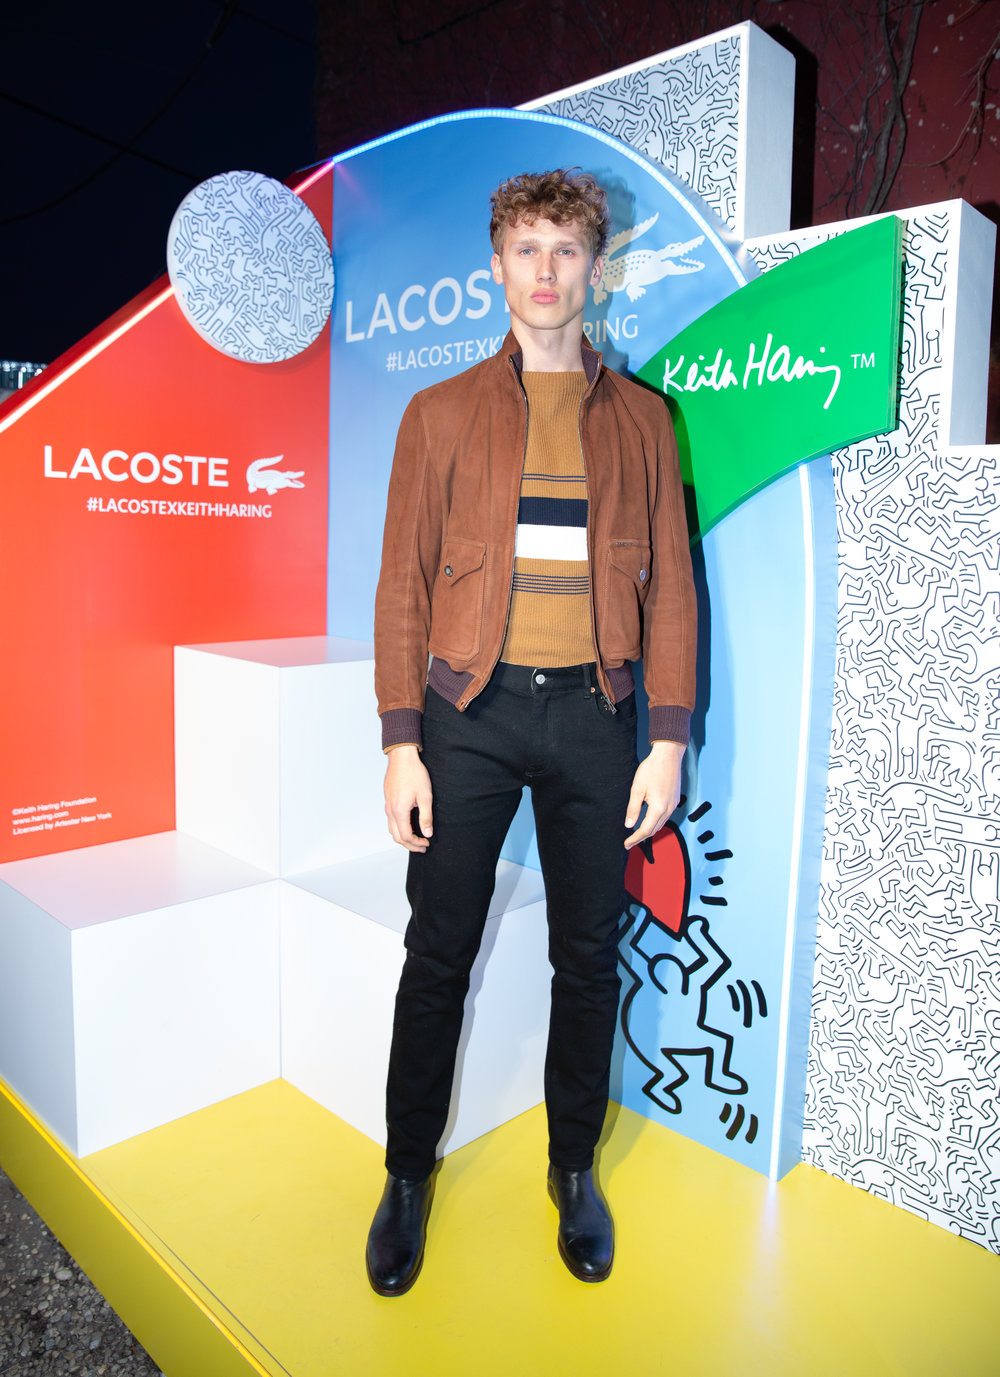 Bram Valbracht attends The Lacoste x Keith Haring Global Launch Party at Pioneer Works on Tuesday, March 26th, 2019. Photographed by Max Lakner/BFA.